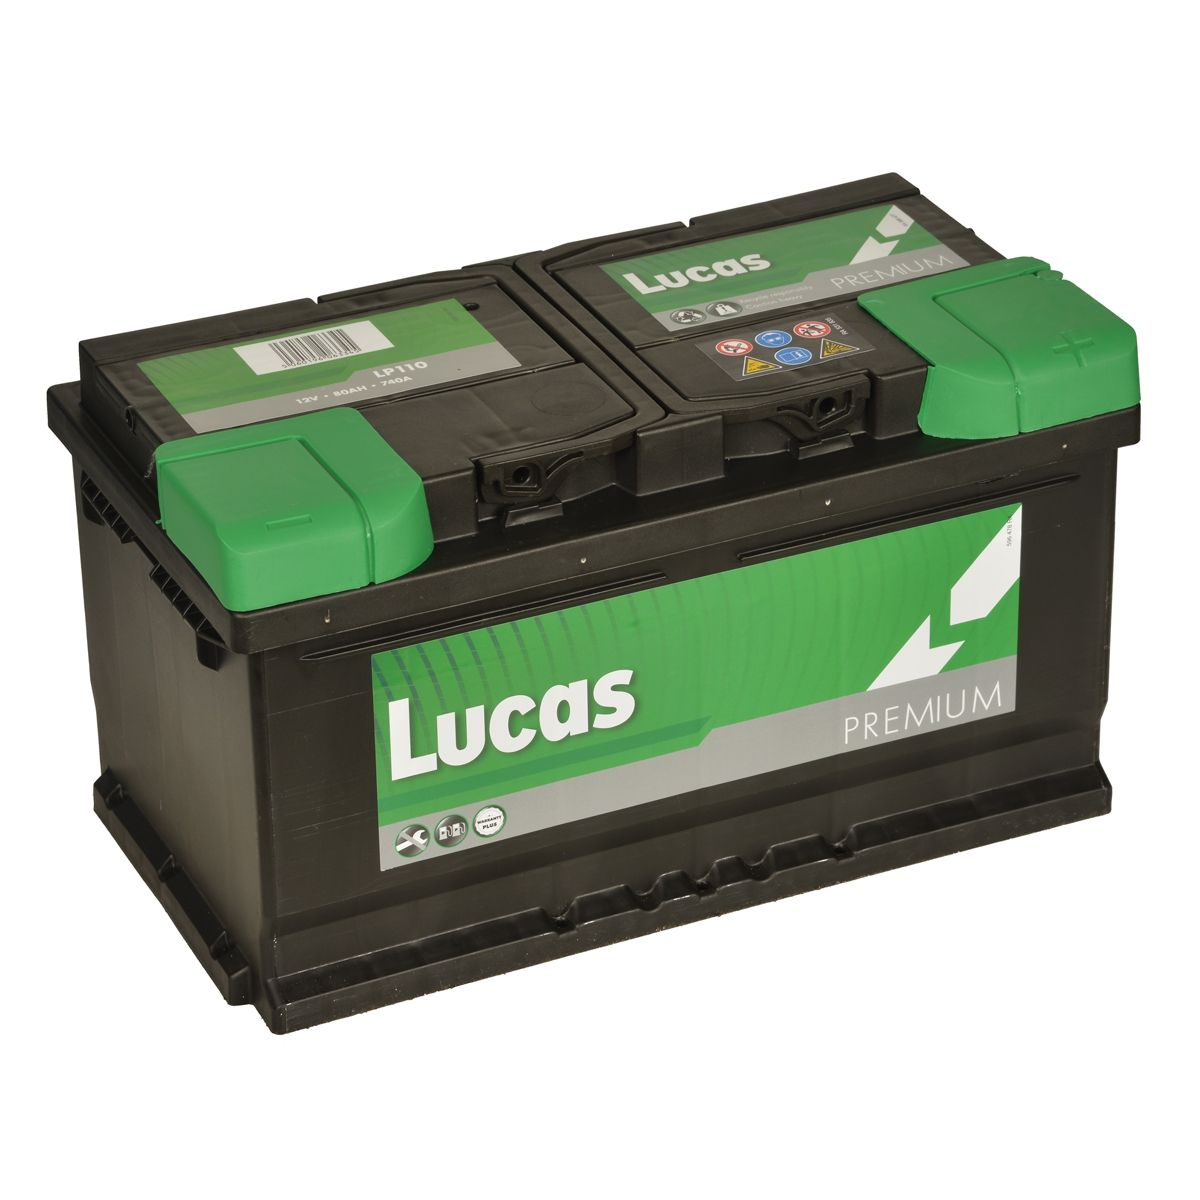 Lucas LP110 Audi BMW Vauxhall 12v Volt 80Ah 800CCA 110 4 Year Car Battery